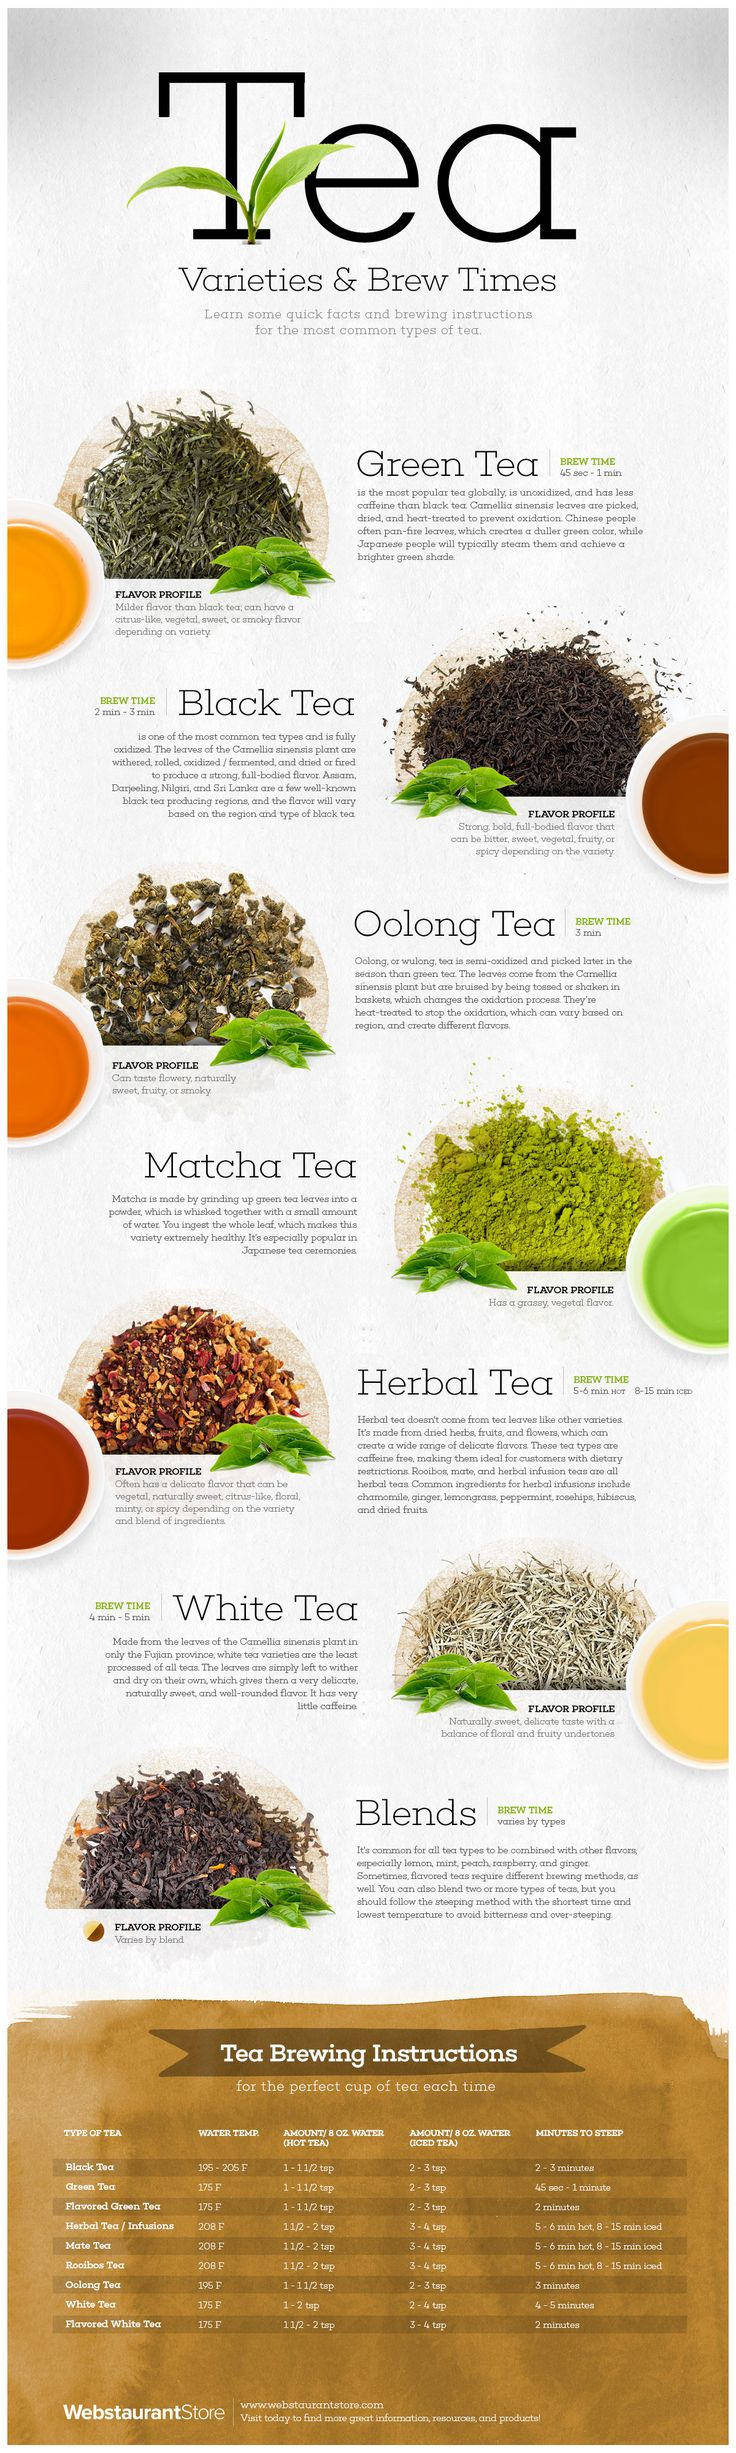 Types of Tea   Optimal Tea Temperature and Brew Times